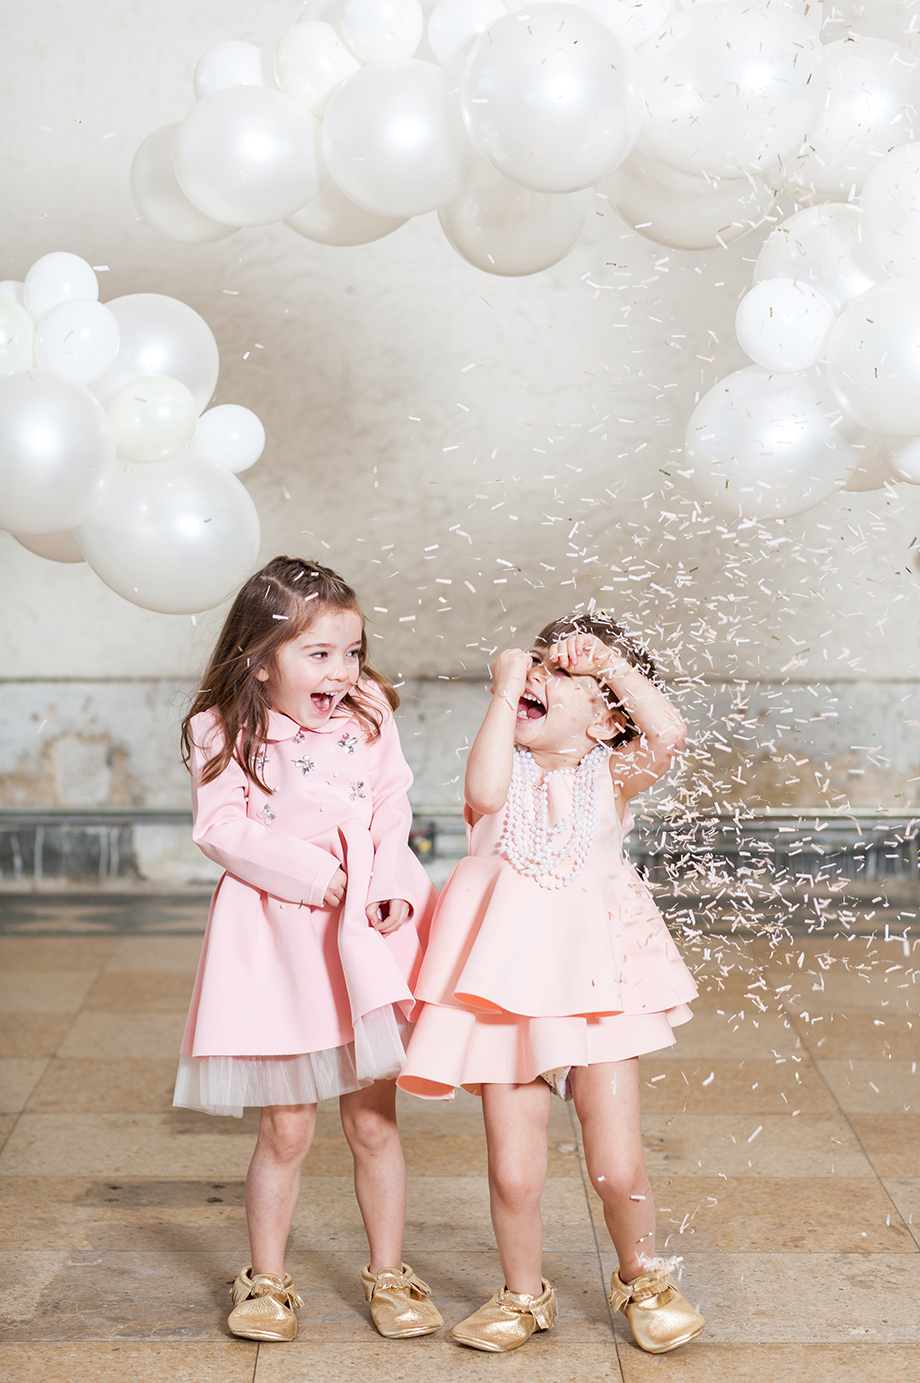 This is a giveaway for Freshly Picked shoes that features Luft Balloons, ModerneChild Shoppe and Glitter and Bubbles at The Bank on Broadway.